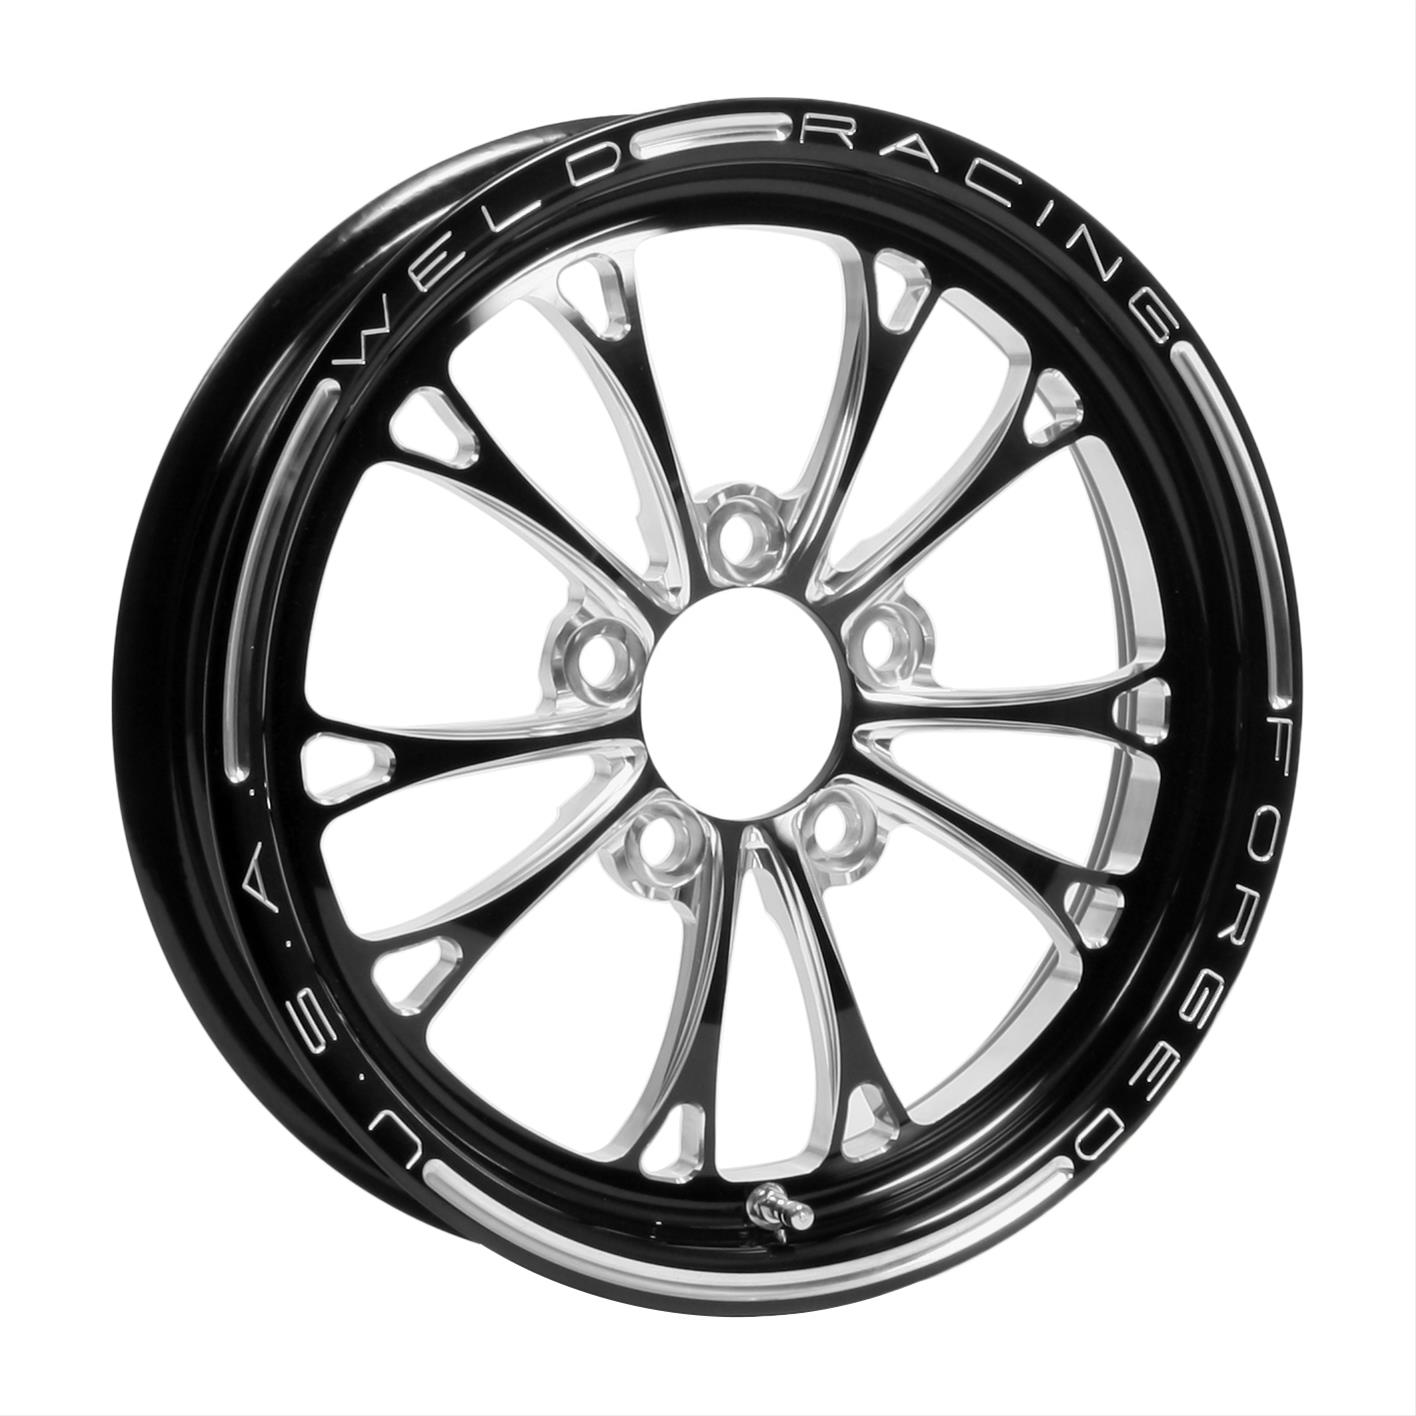 weld racing v series black anodized wheels 784b 15202 free 1973 Ford Pickup weld racing v series black anodized wheels 784b 15202 free shipping on orders over 99 at summit racing